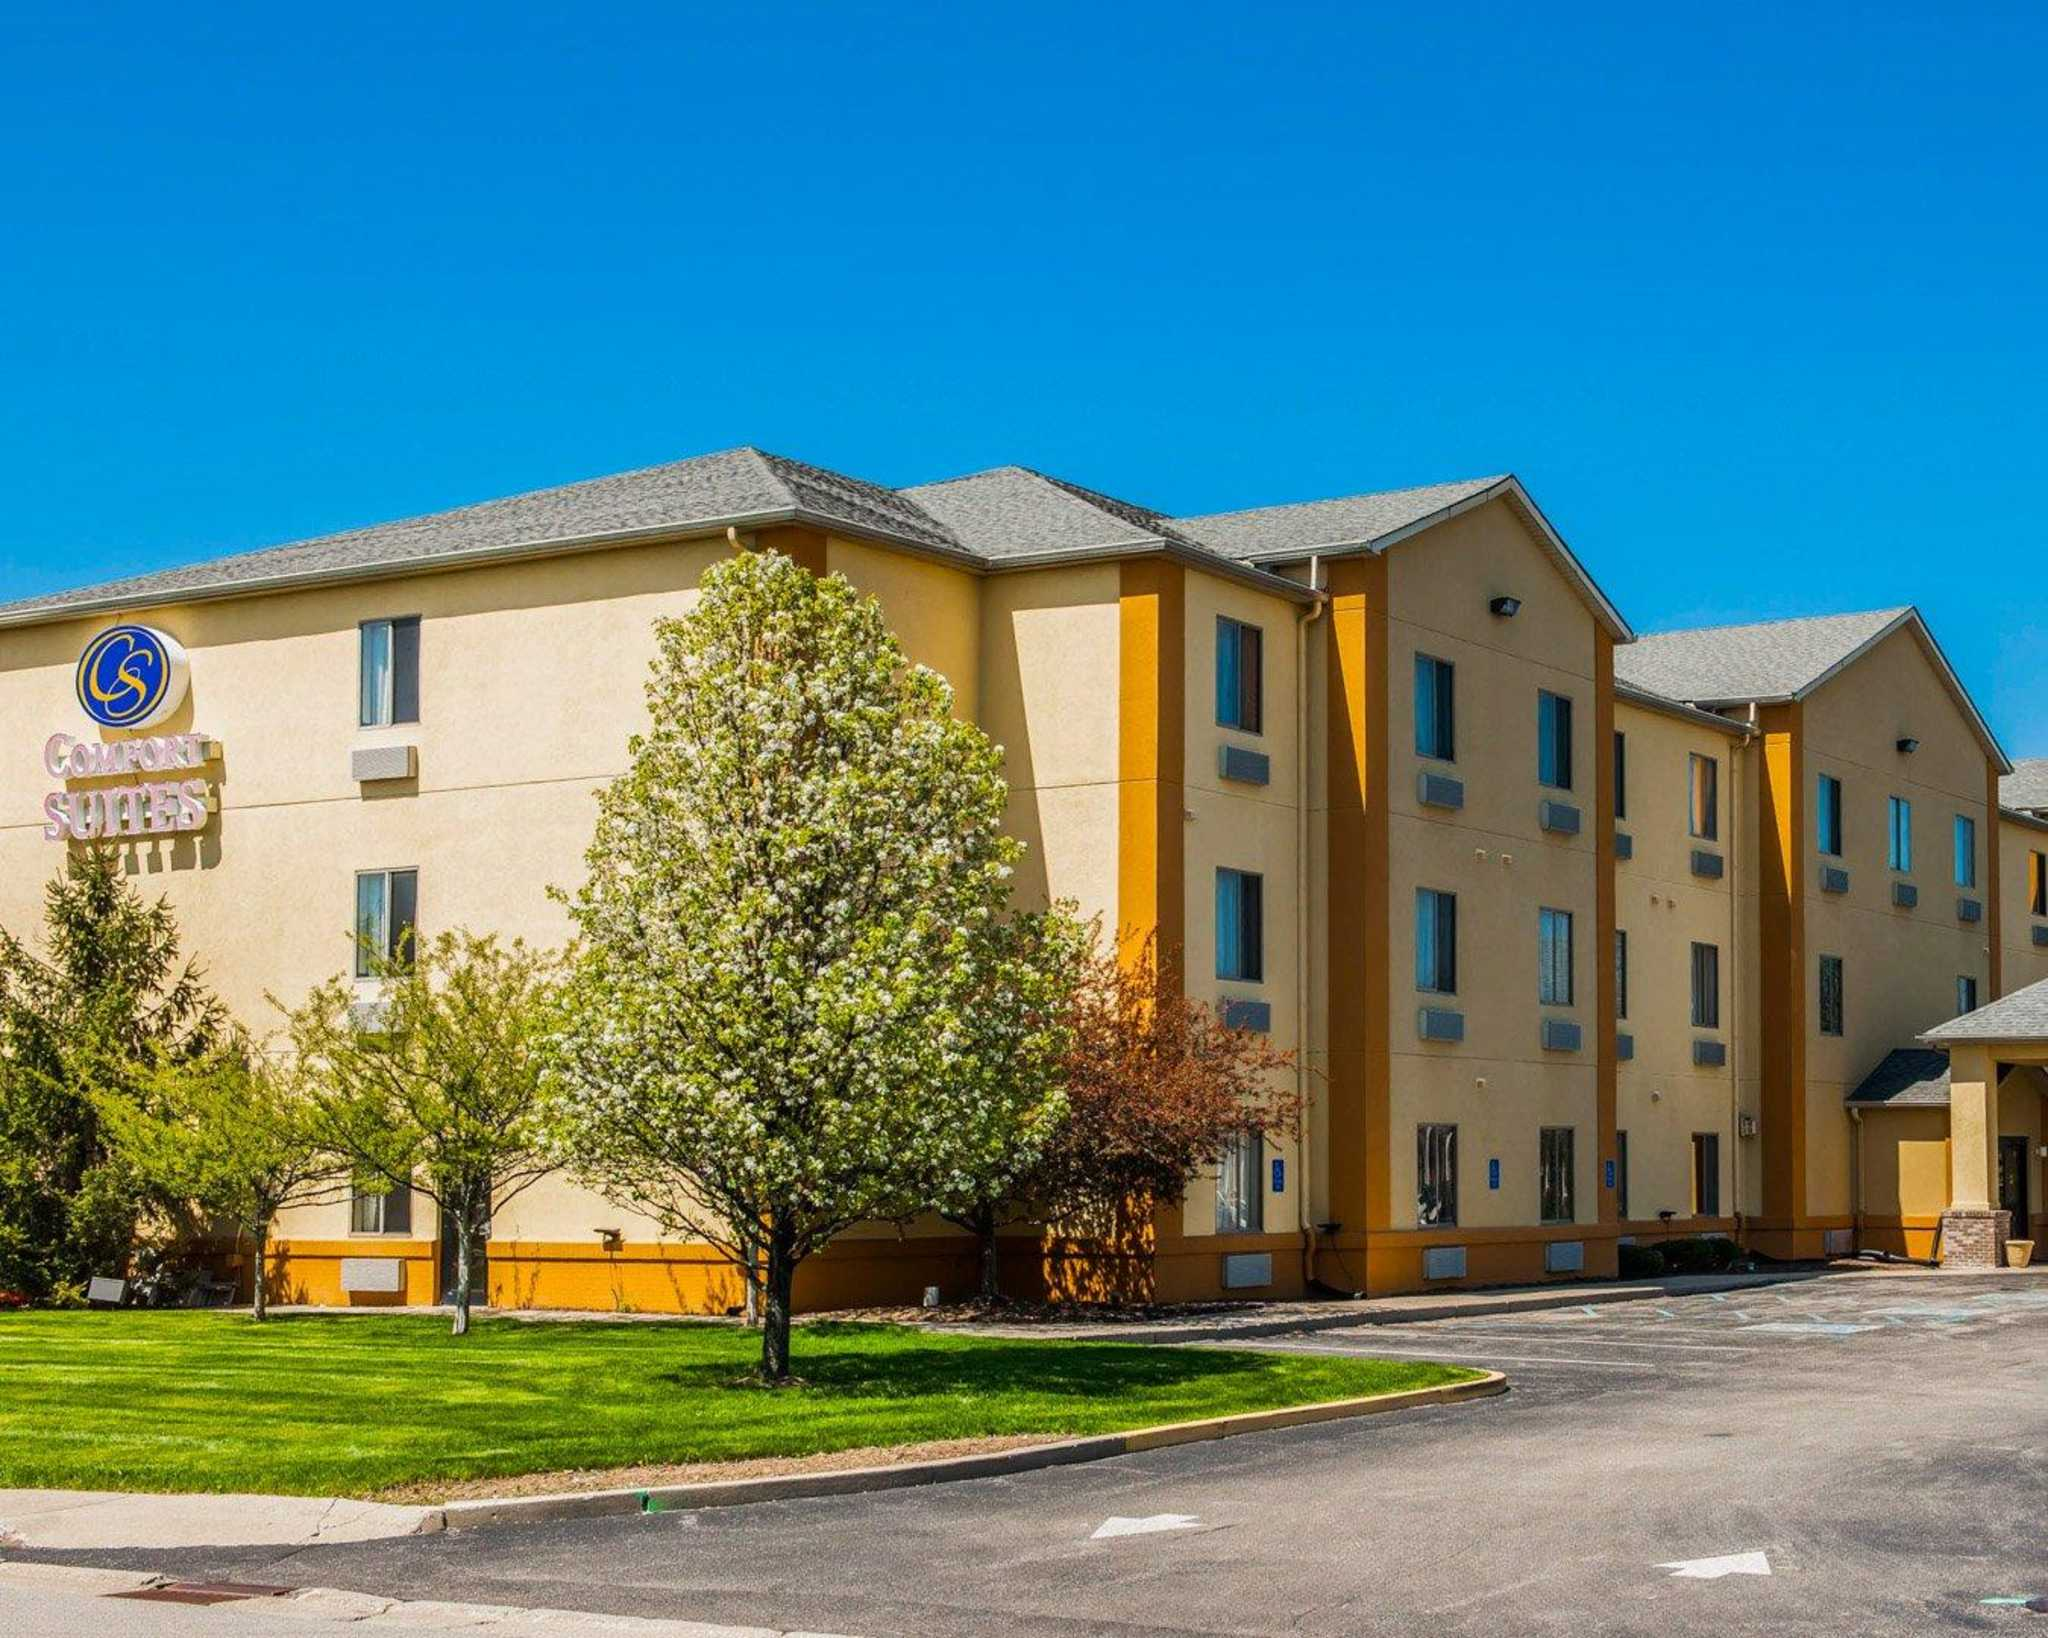 Comfort Inn Hotels in Indianapolis: find traveler reviews, candid photos, and prices for 5 Comfort Inn Hotels in Indianapolis, IN.